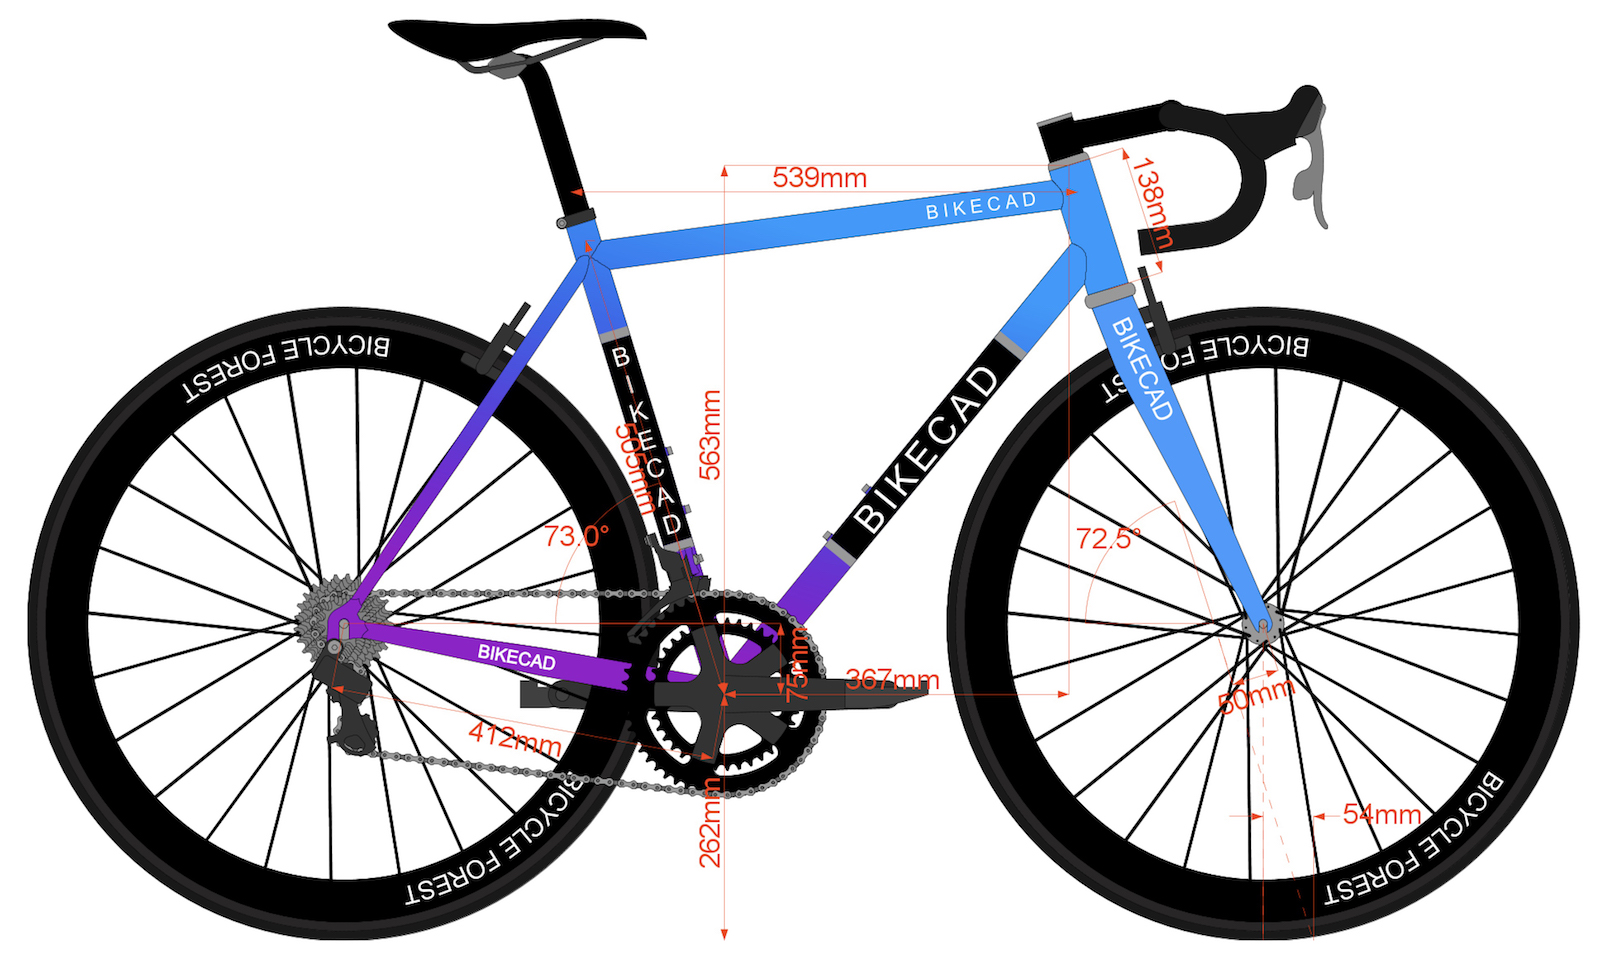 geometry of a bicycle encompasses parameters that influence the fit and the steering